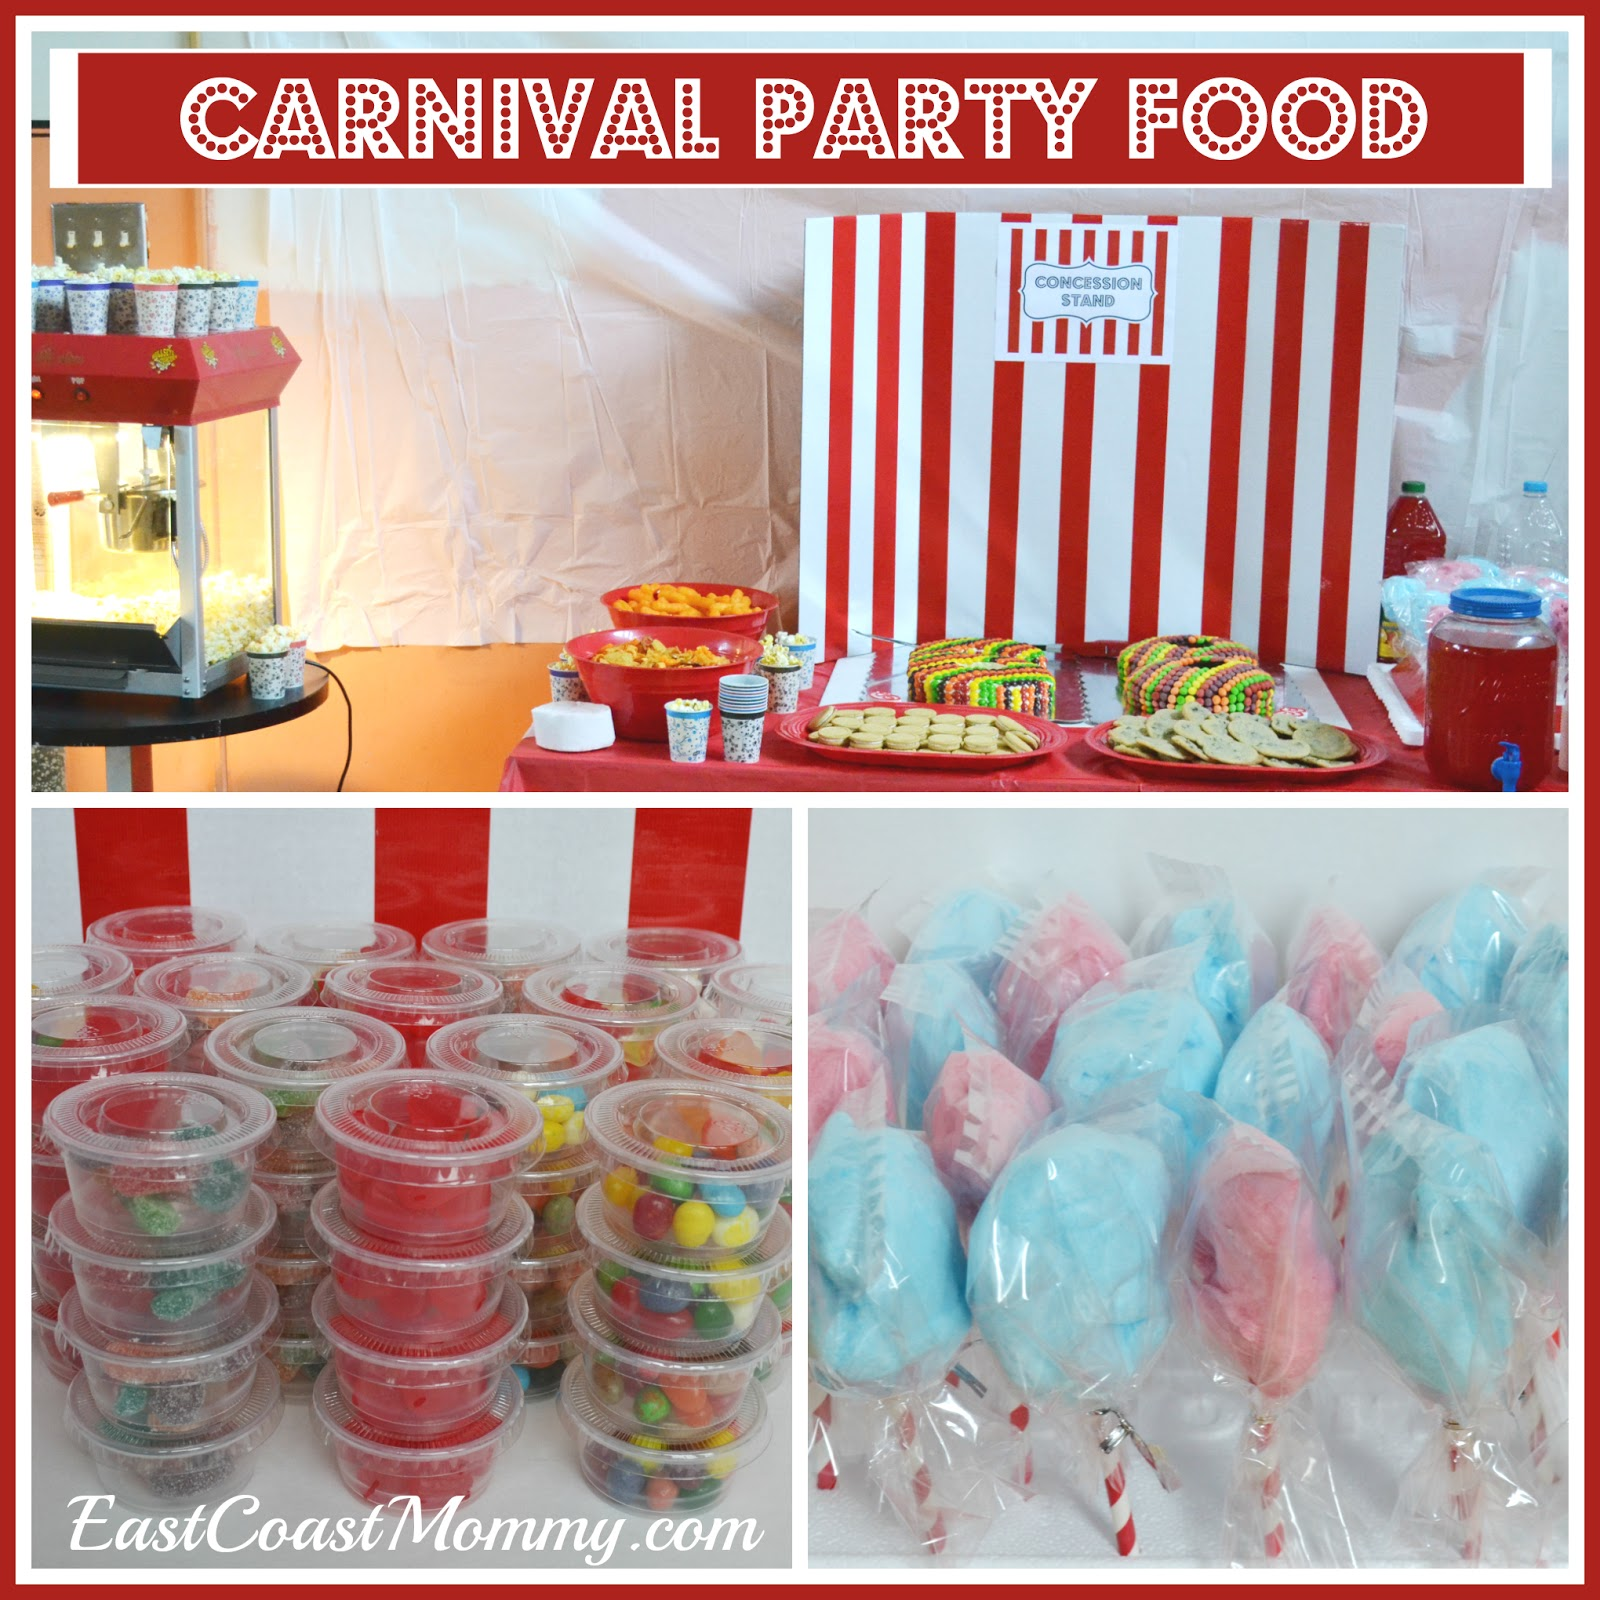 East coast mommy the ultimate diy carnival party - Carnival party menu ...